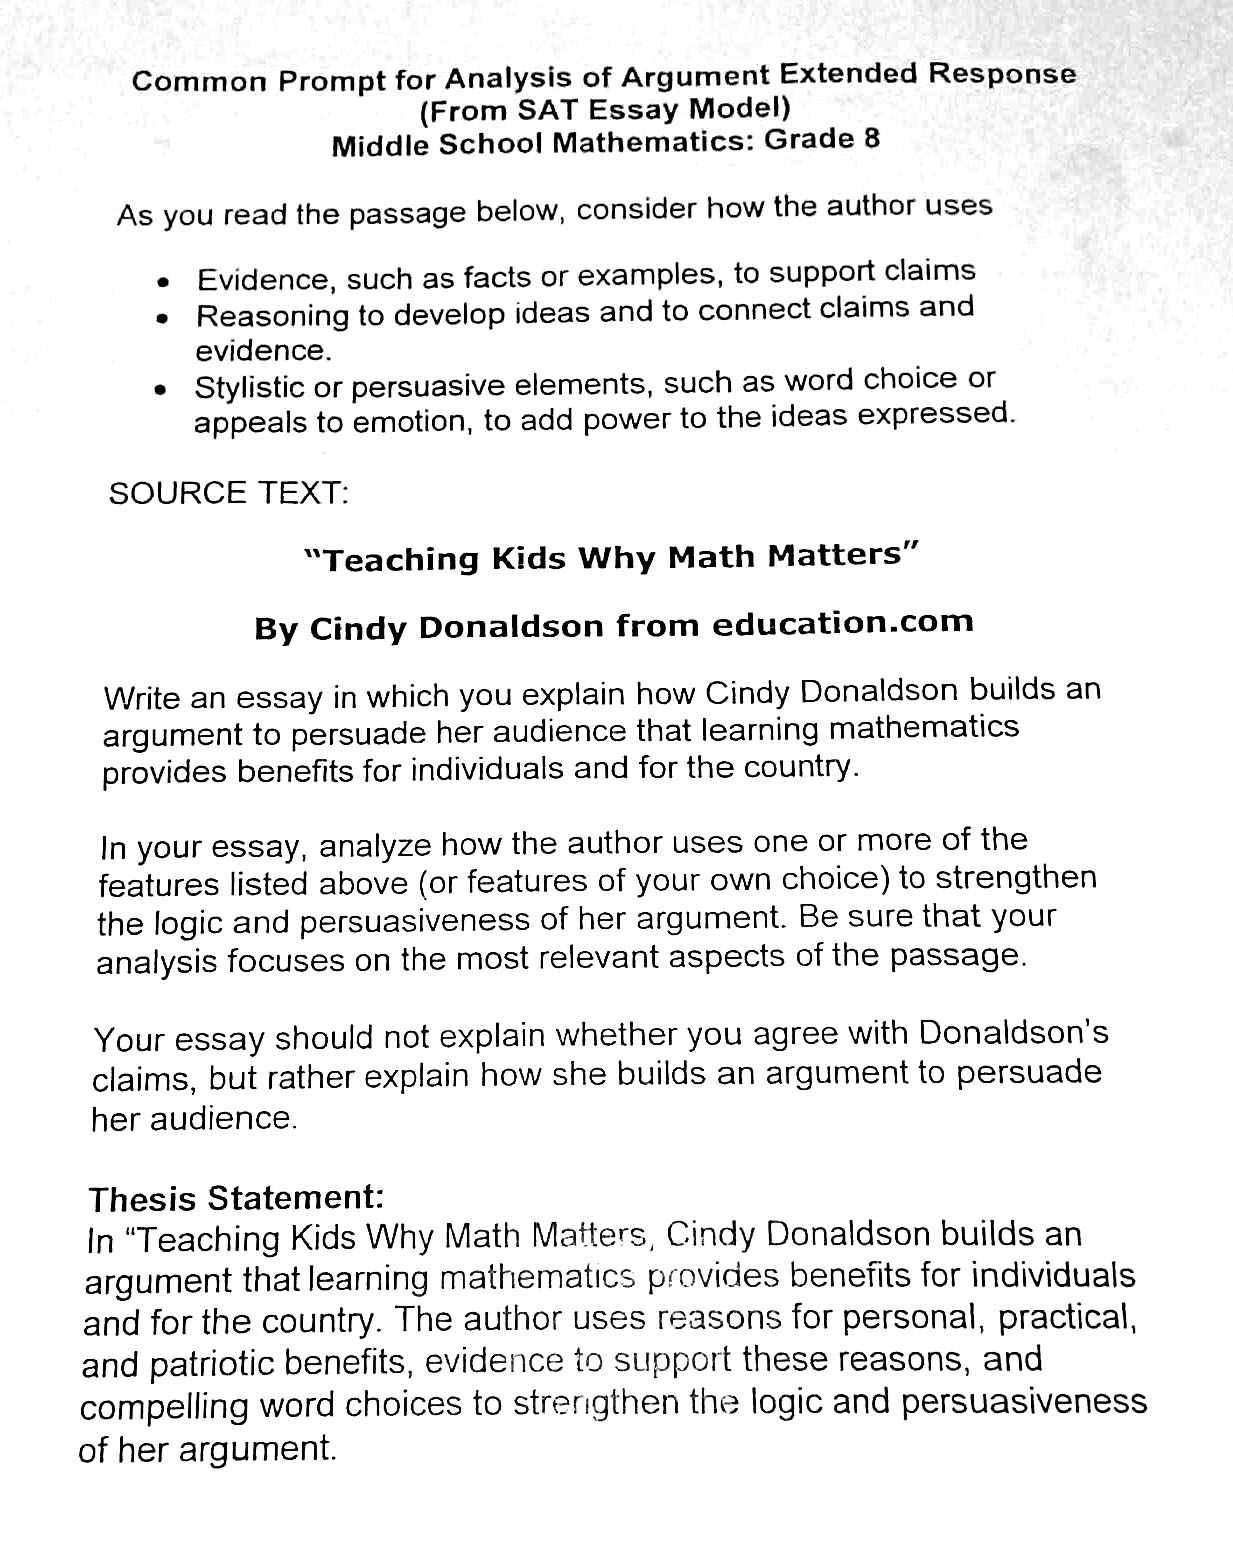 High School Essays Browse And Read Sample College Essays About An Influential Person Sample  College Essays About An Influential Person What Do You Do To Start Reading  Sample  Business Essay Format also Importance Of English Essay Examples Of College Essays Influential Person Pay Someone To Write  Compare And Contrast High School And College Essay